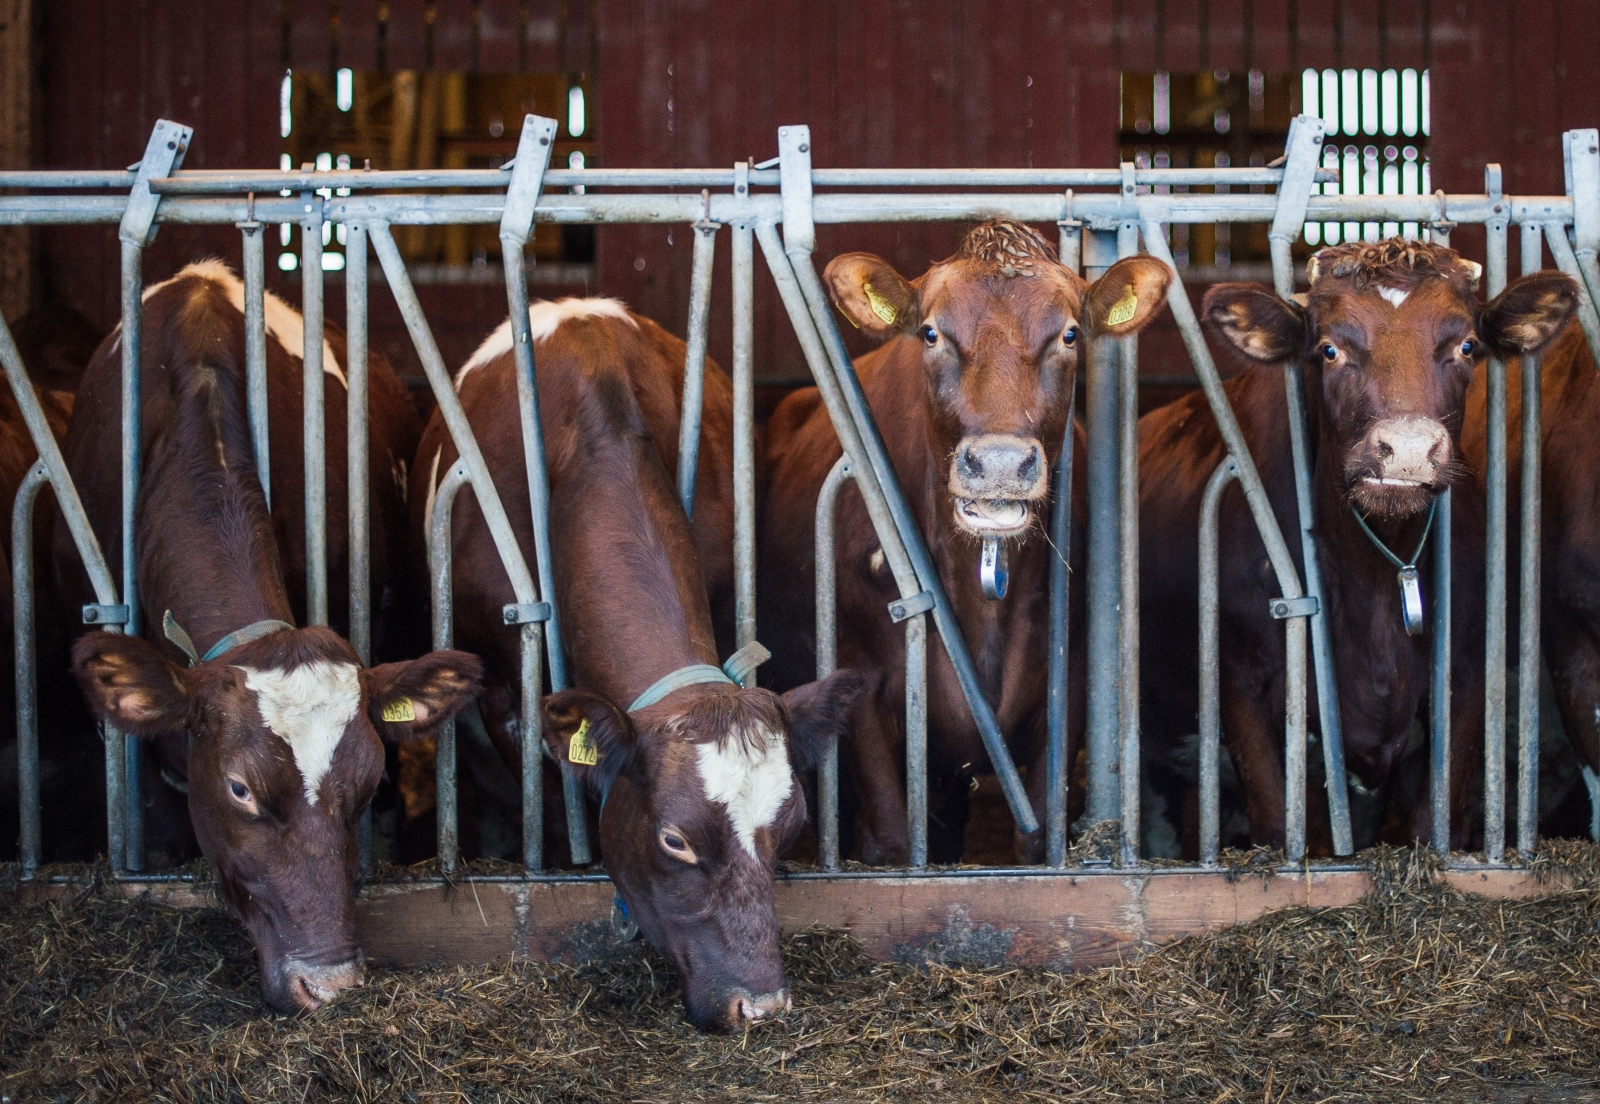 Cows feed at Swedish dairy farm